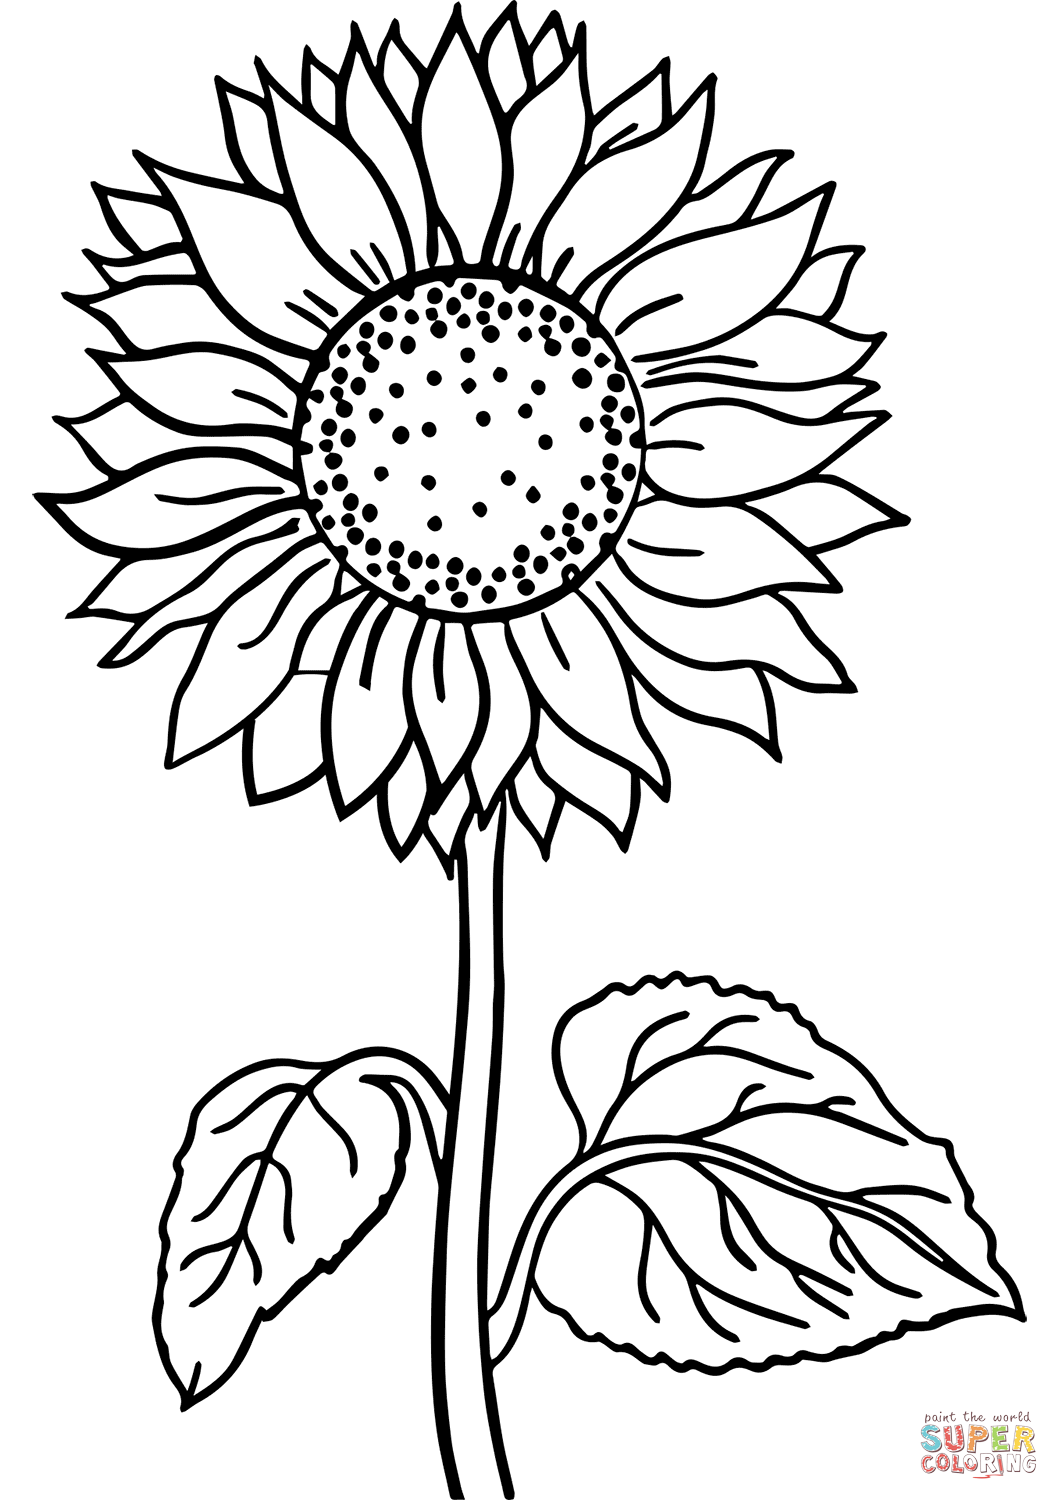 coloring pictures of sunflowers sunflowers clipart to color 20 free cliparts download coloring sunflowers of pictures